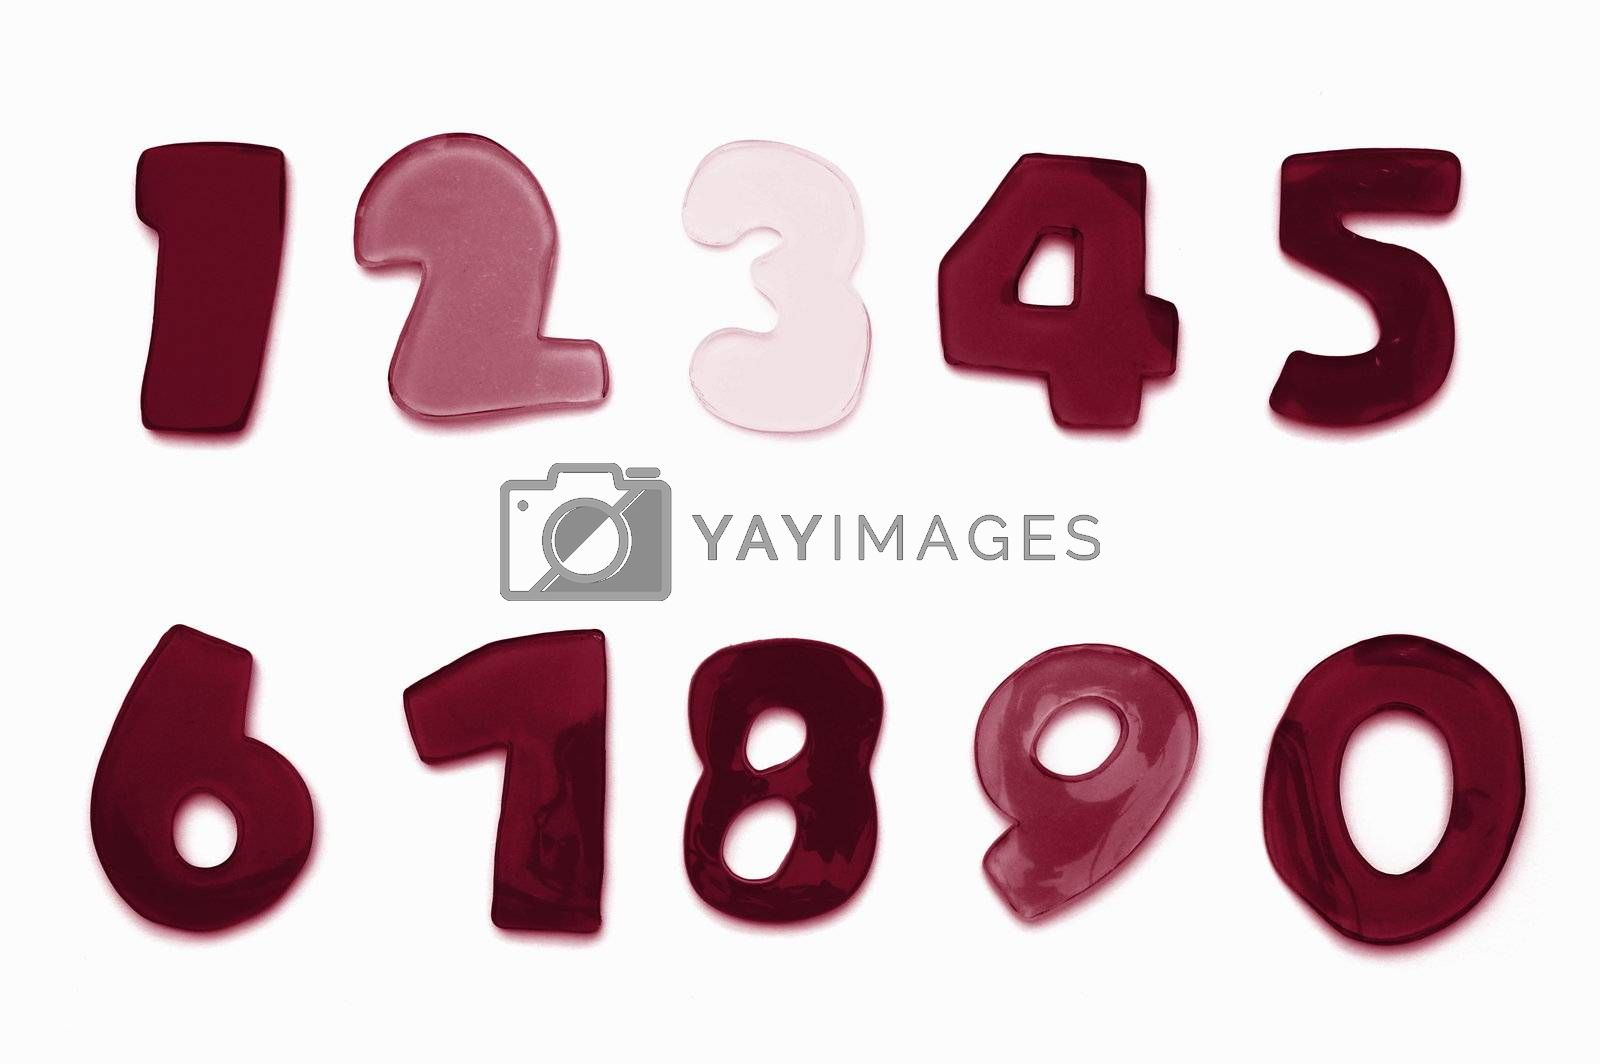 alphabet from A to Z and numbers form 0 to 9 can be used as font